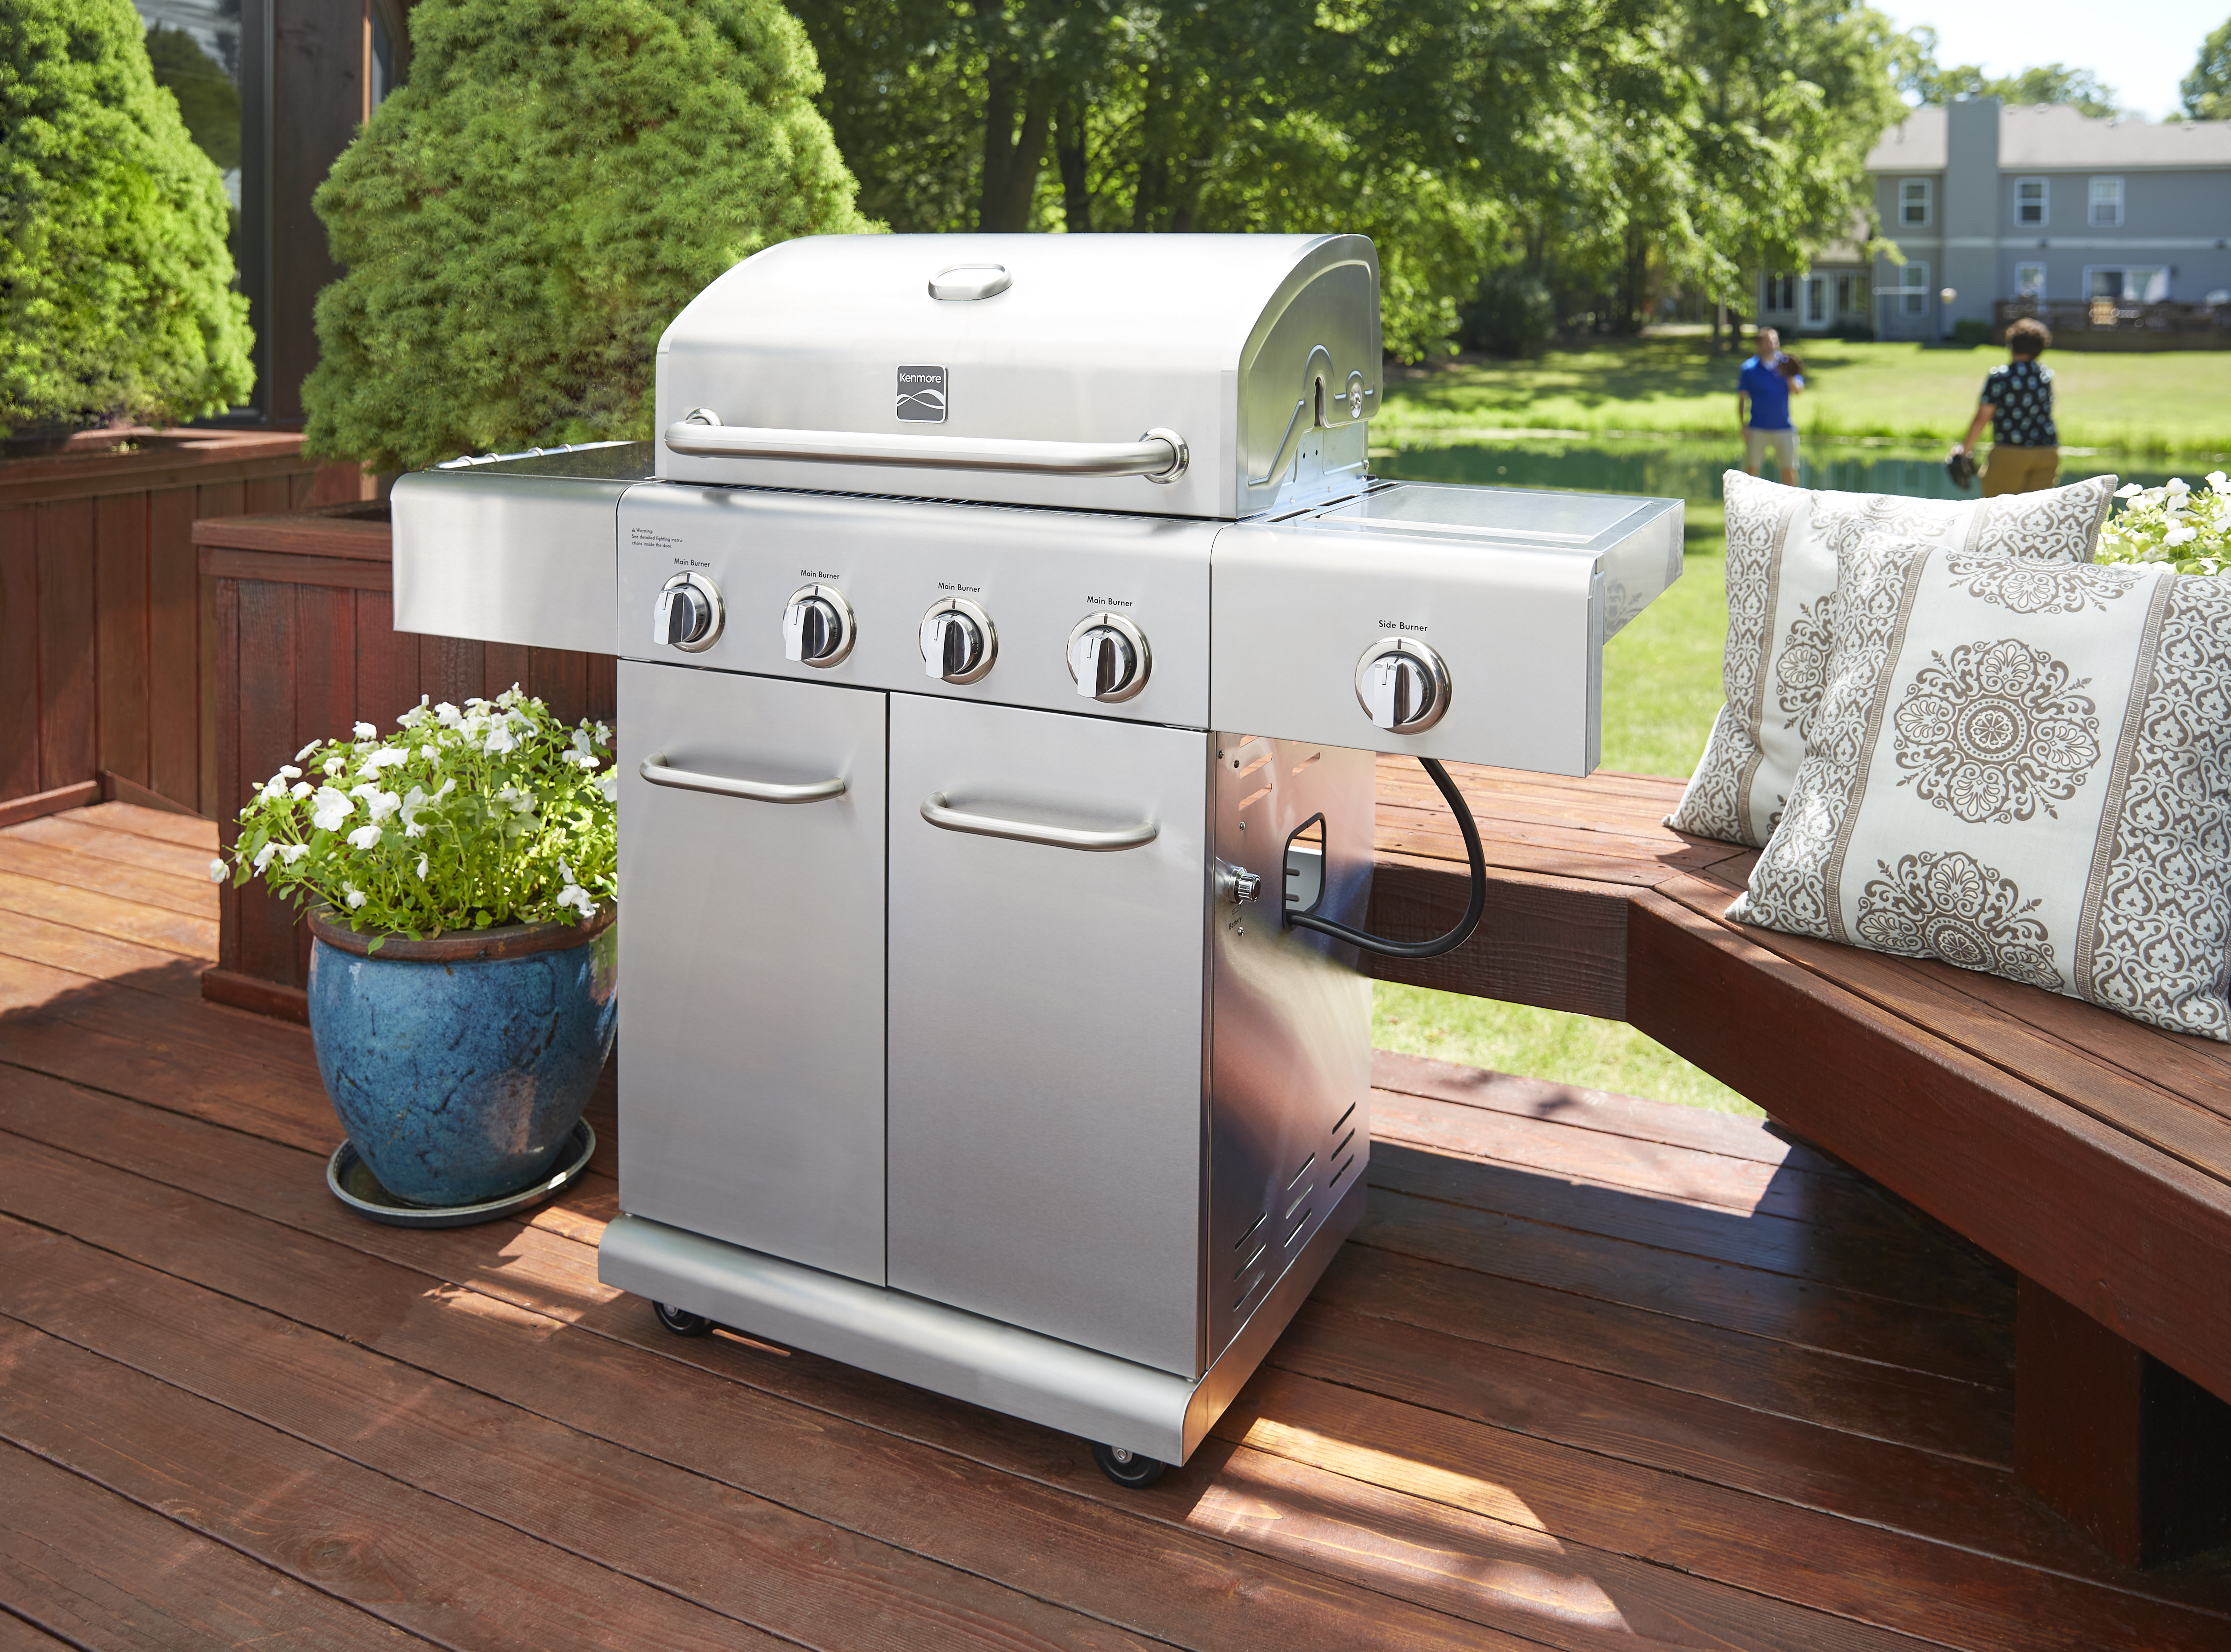 Kenmore 4 Burner Stainless Steel Grill with Side Burner with 2 Push Bars and Accessry Hooks